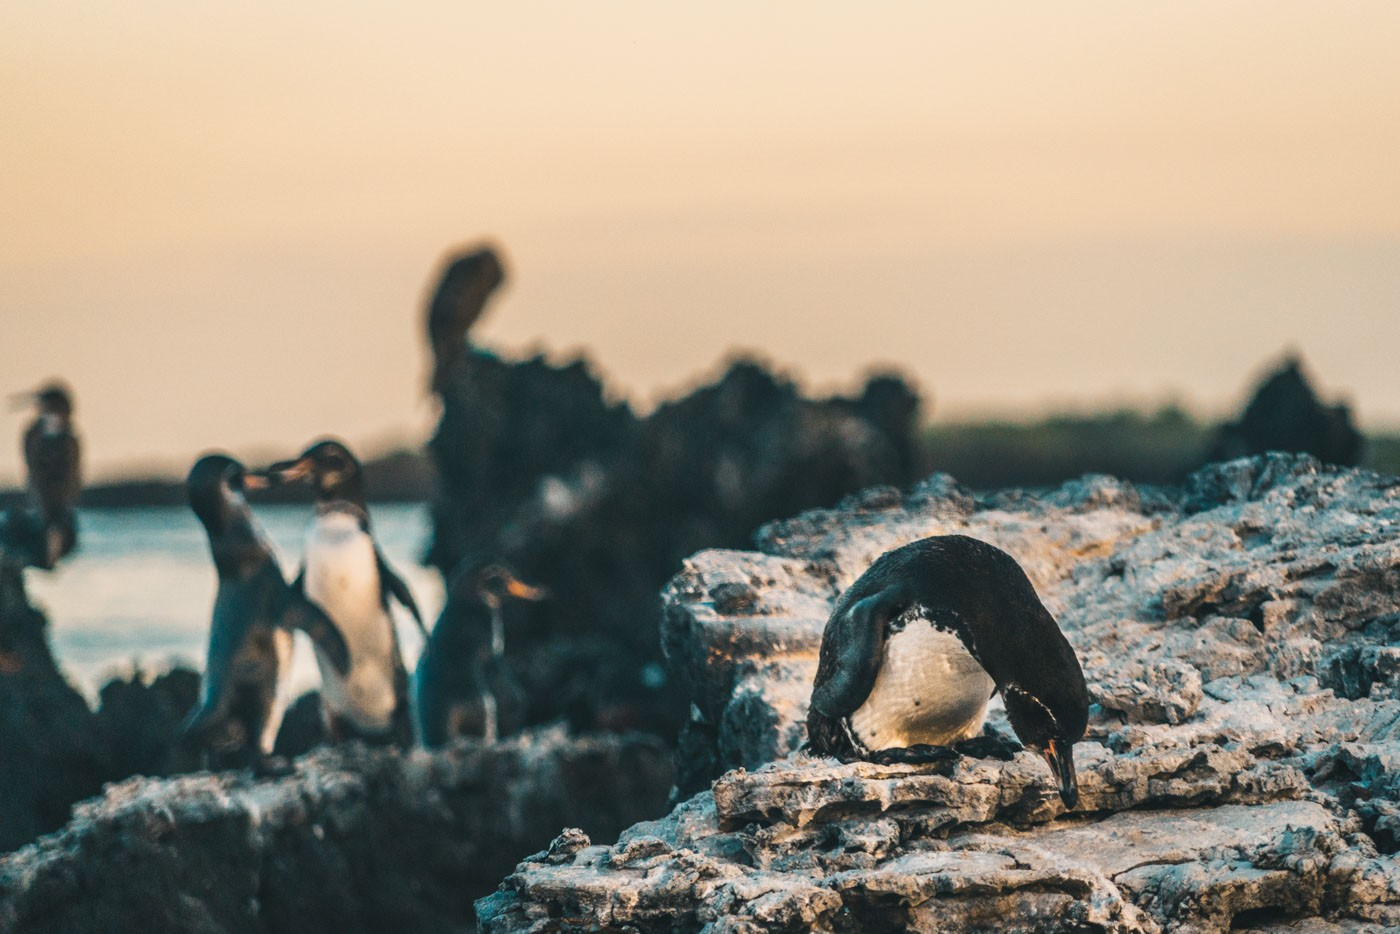 Penguins on Tintorenas, Isabela Island. Galapagos